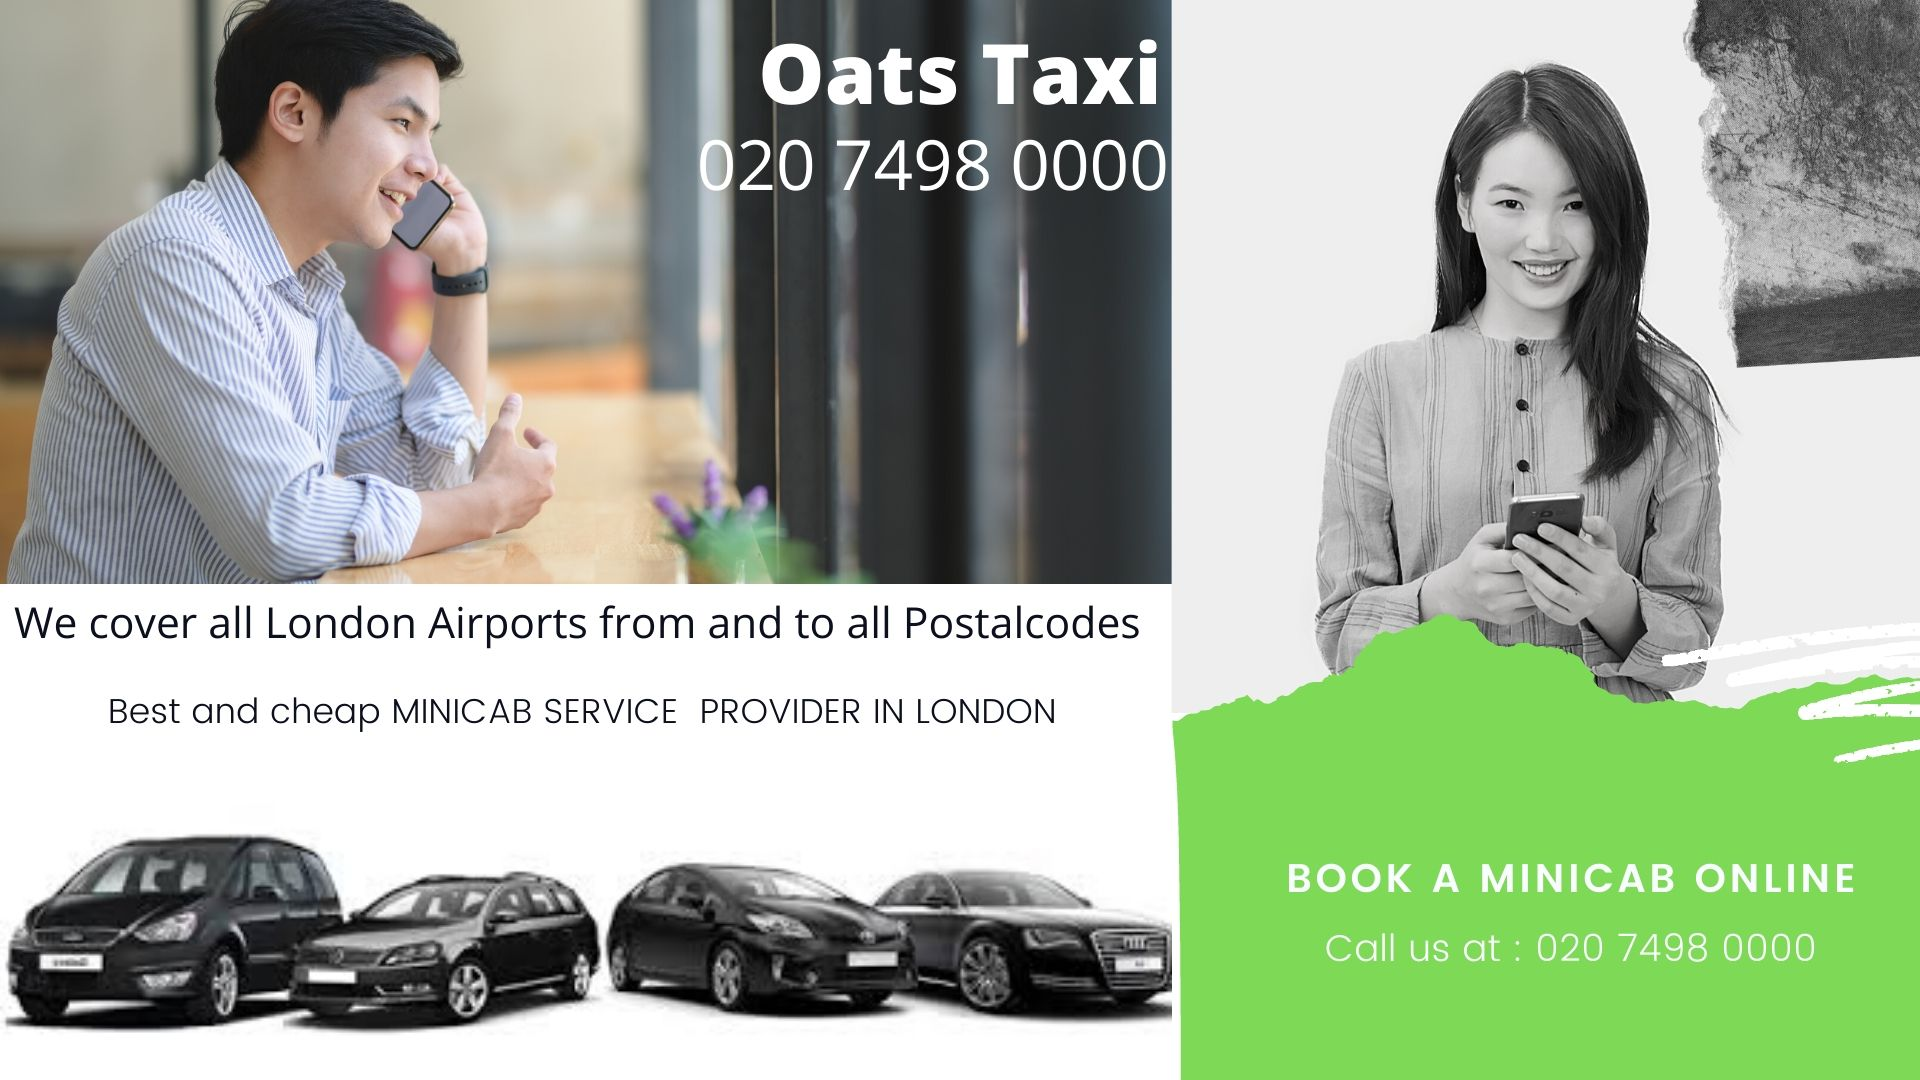 Nearest Taxi Office in Old Malden | Gatwick Airport | Call now : 02074980000